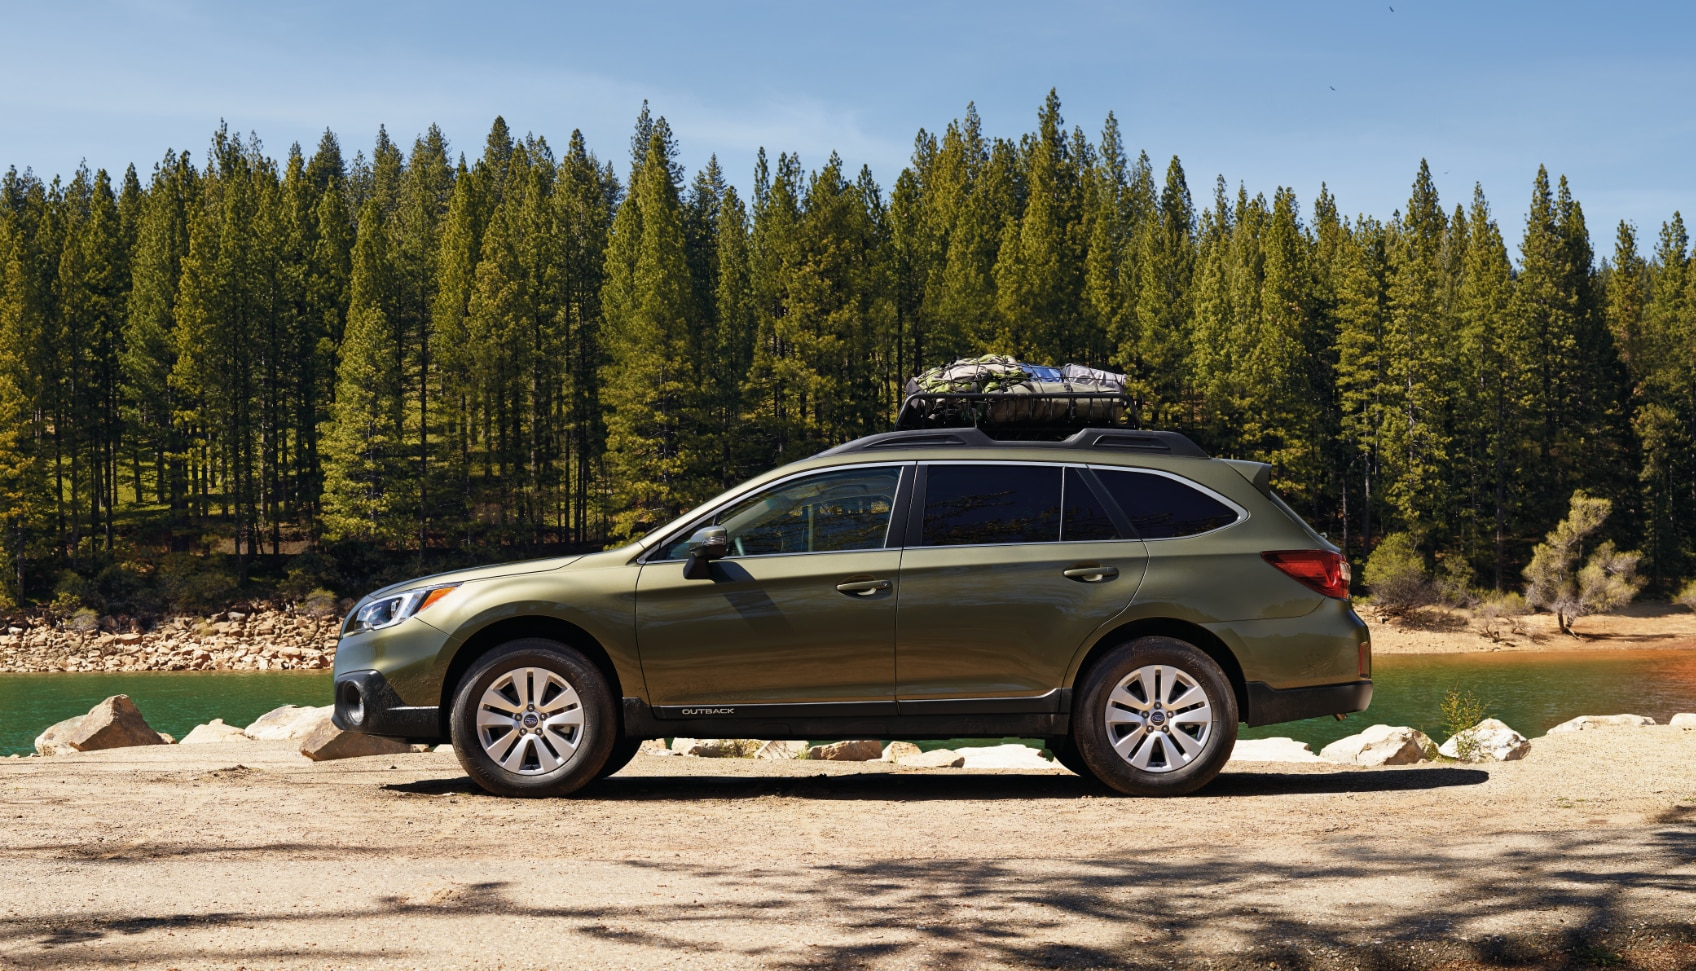 New Subaru Outback for sale near San Francisco, CA